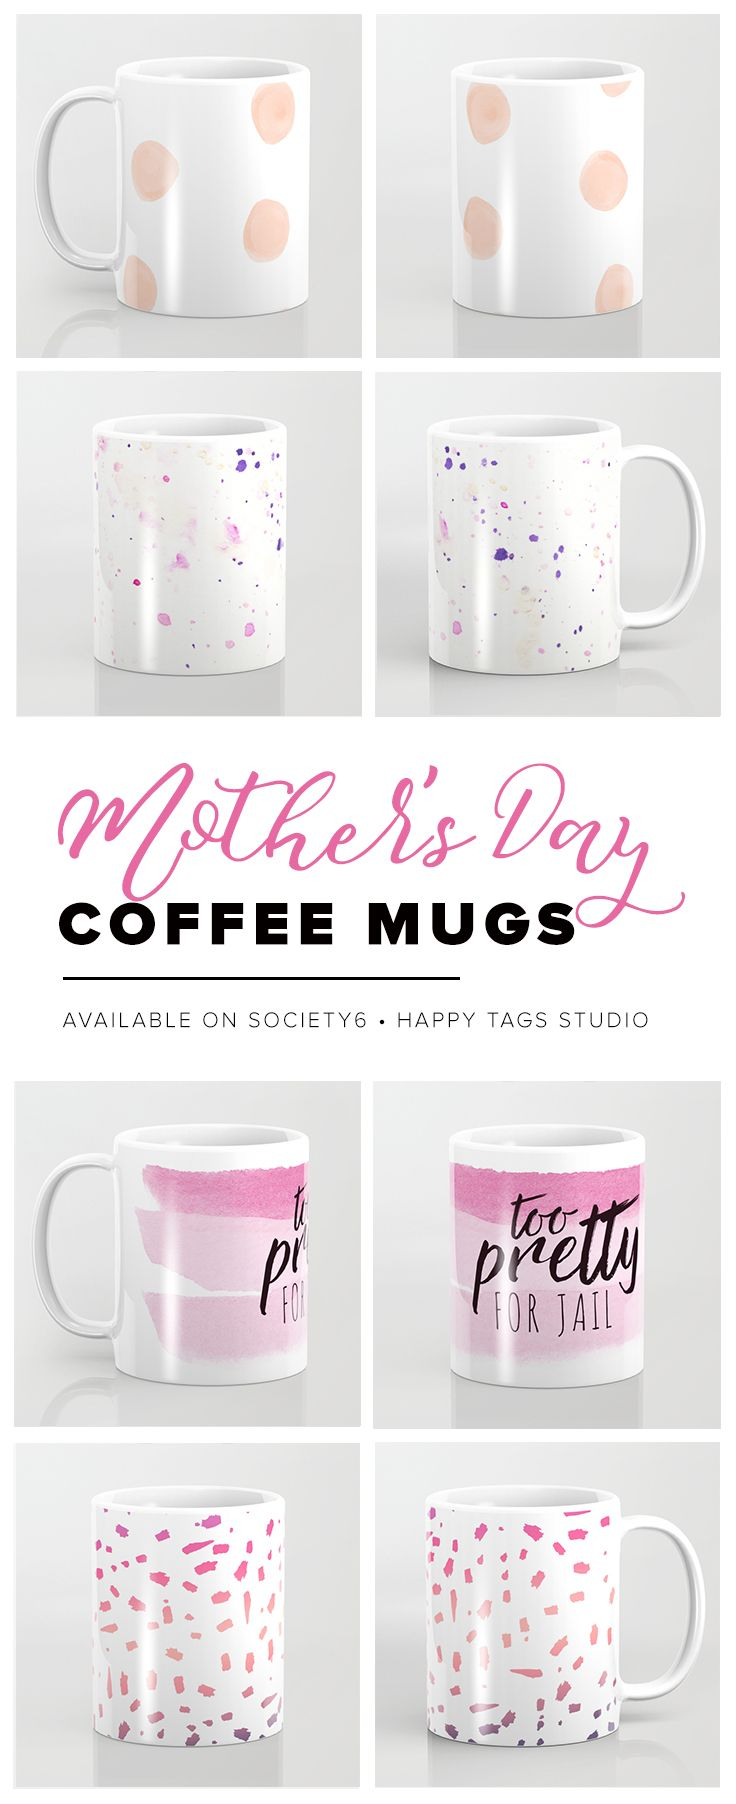 Get mom something she always needs more of--coffee mugs! Choose one of the unique designs to brighten up her morning routine. Even better, pair one of these awesome mugs with a pound of her favorite fresh ground coffee for the perfect mother's day gift combo!  #gift #mother #mom #mama #pink #mothersday #holiday #love #lovemom #present #buy #coffee #mug